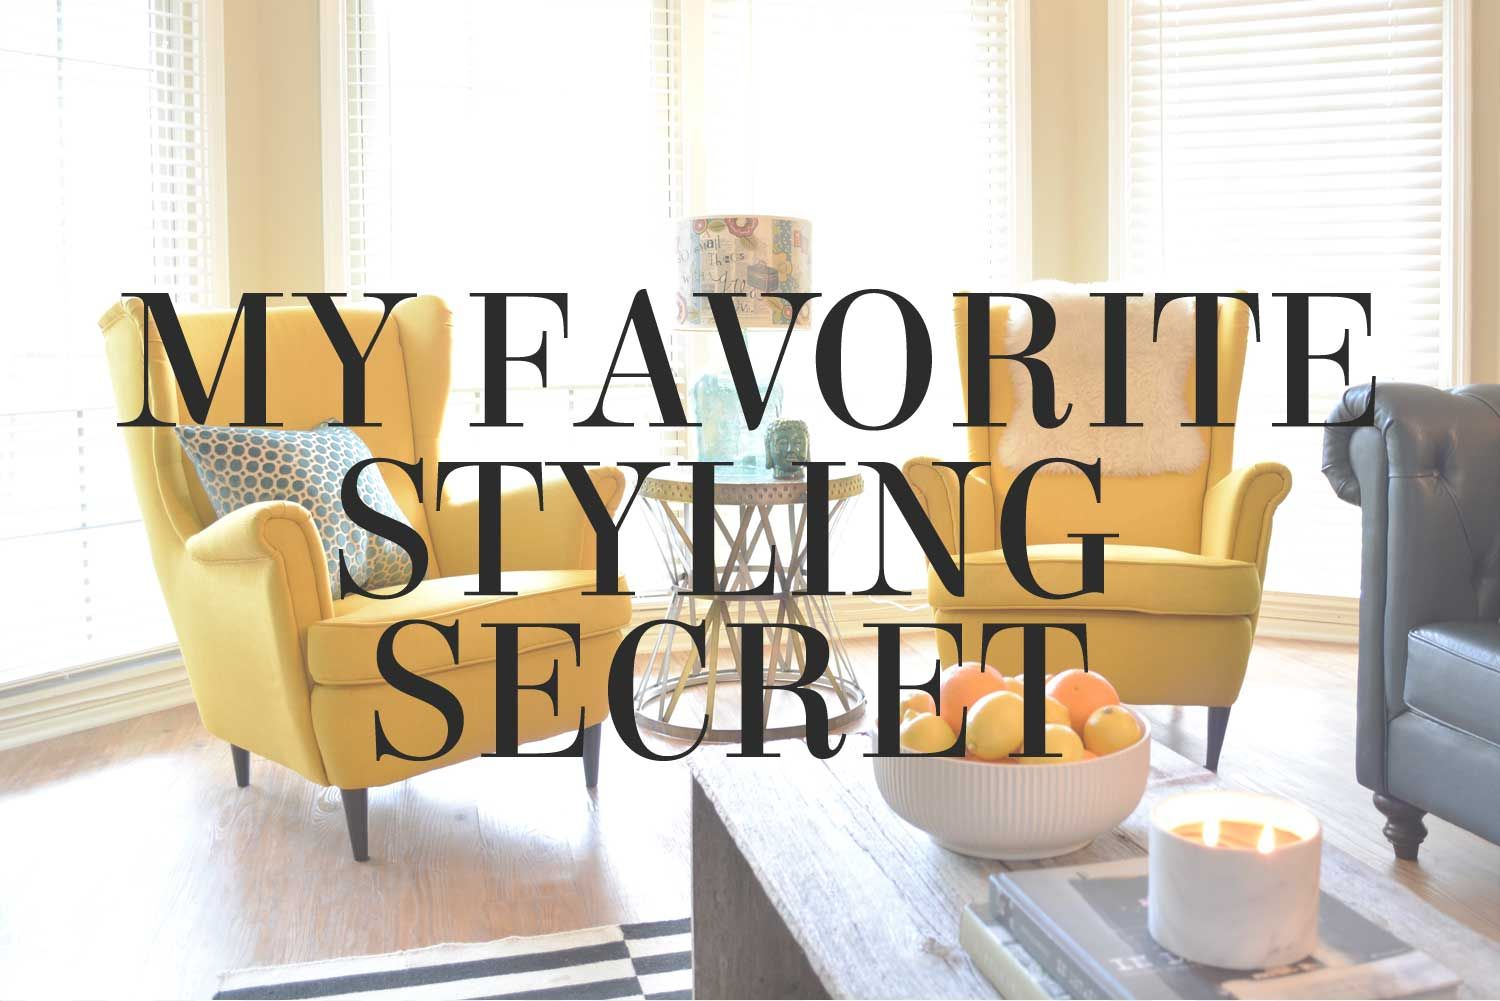 My favorite styling secret - a quick design tip from interior stylist Lesley Myrick